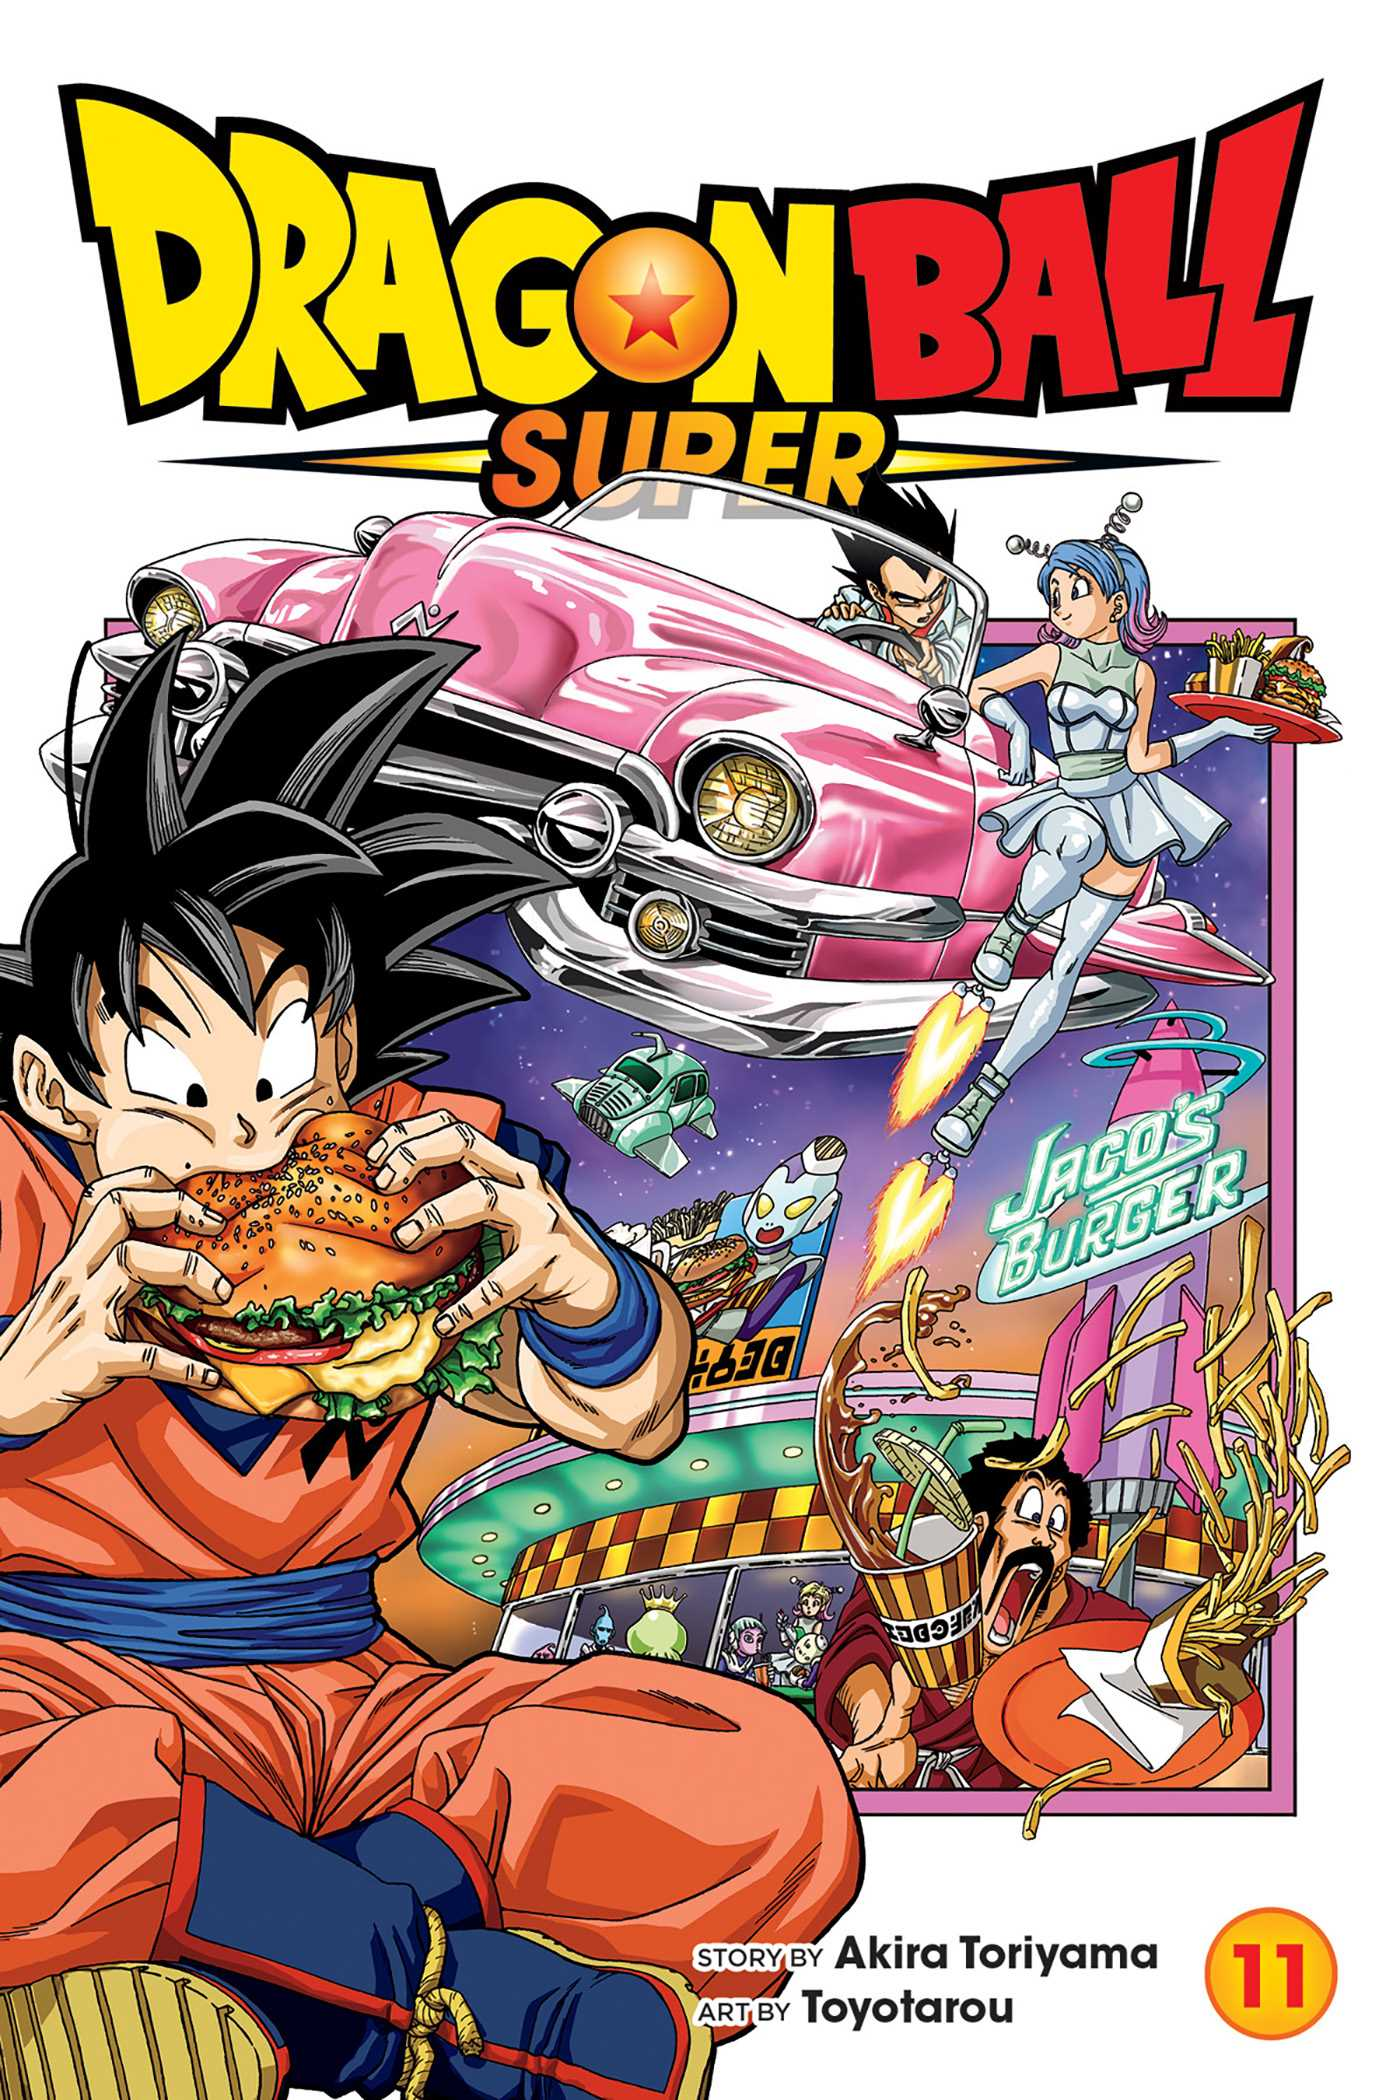 Dragon Ball Super Vol 11 Book By Akira Toriyama Toyotarou Official Publisher Page Simon Schuster